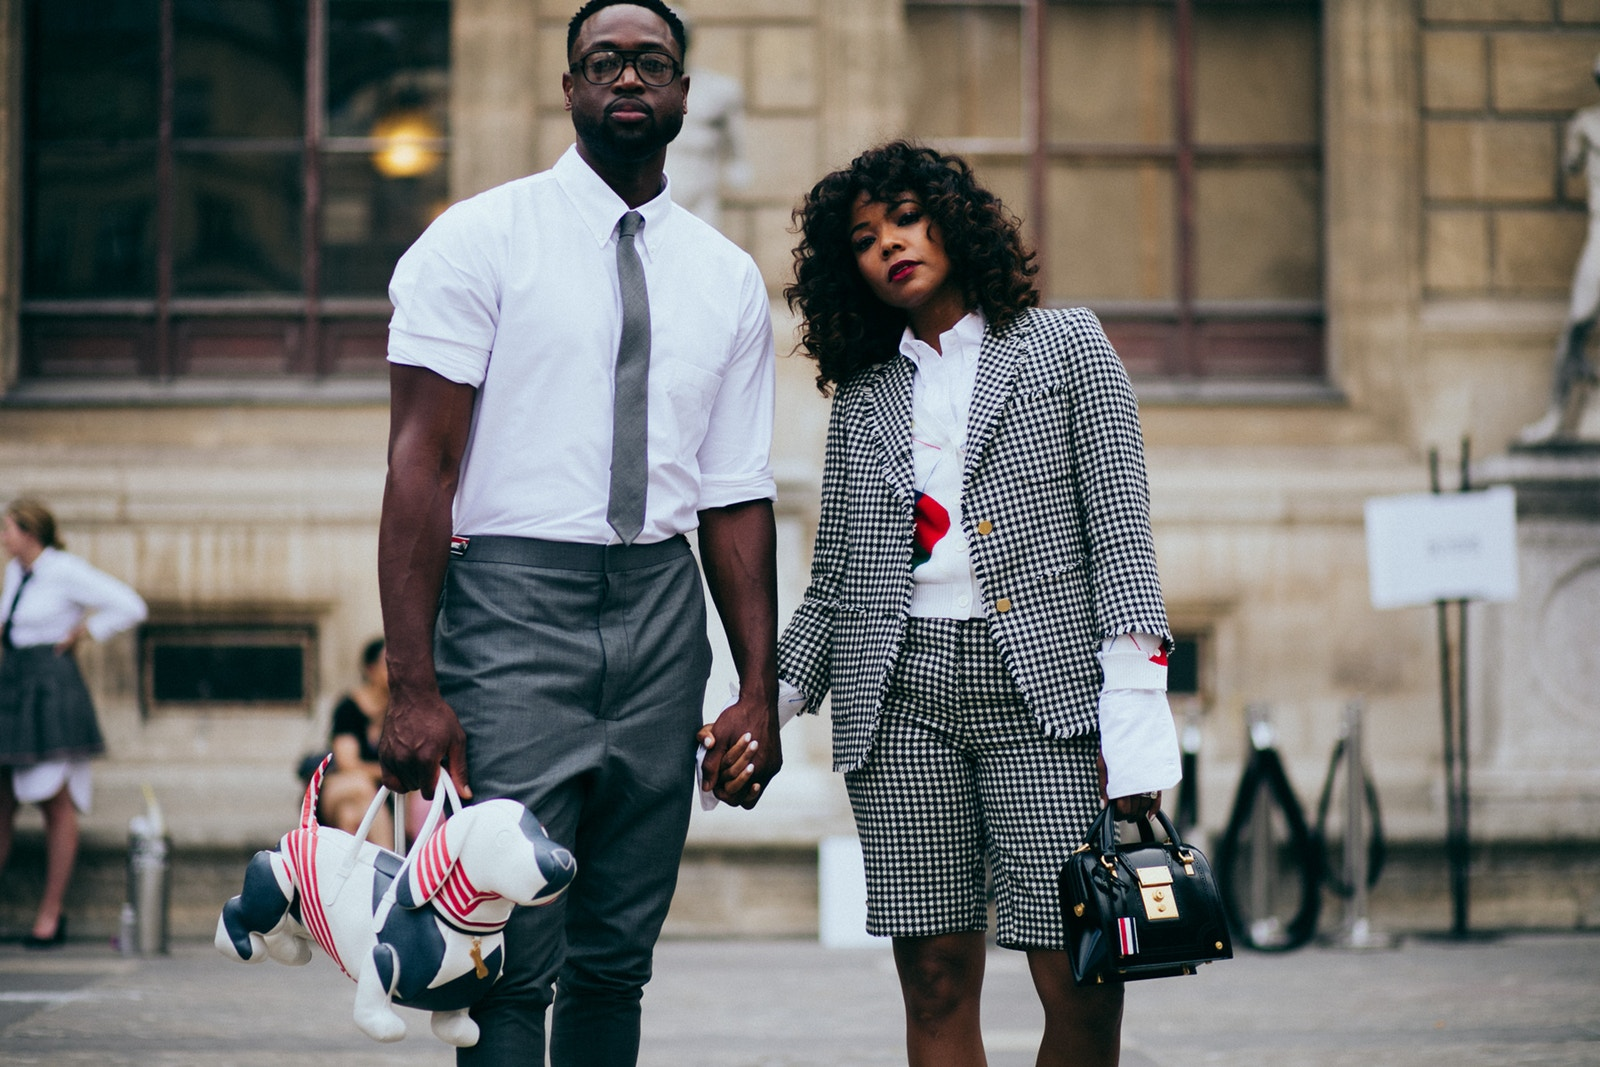 https-hypebeast.comimage201707dwyane-wade-paris-fashion-week-2017-interview-2018-spring-summer-thom-browne-dog-bag-purse-gabrielle-union-1